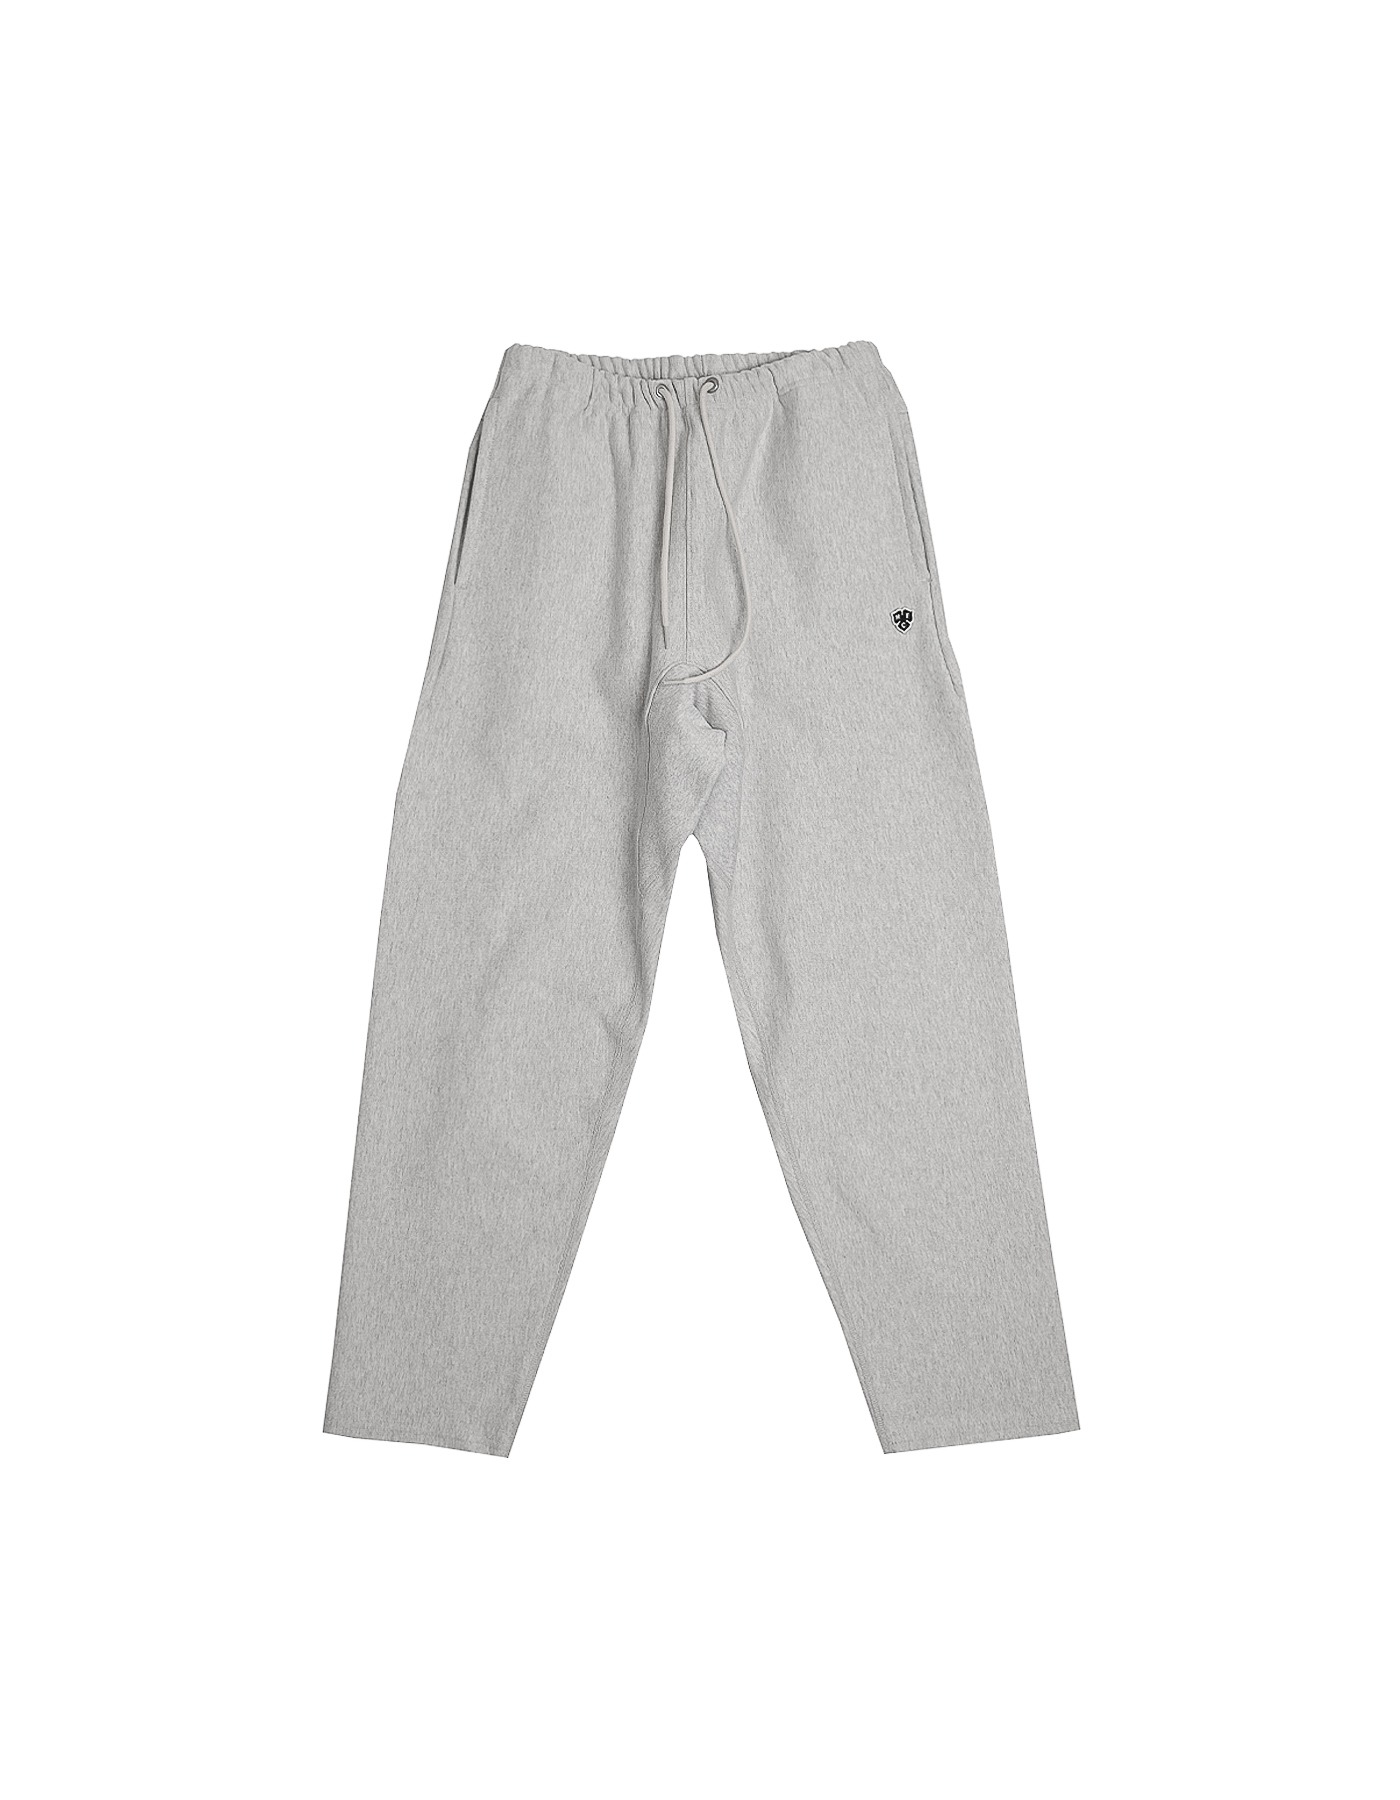 221 REVERSE RAW-CUT PANTS / M.GREY(1%)